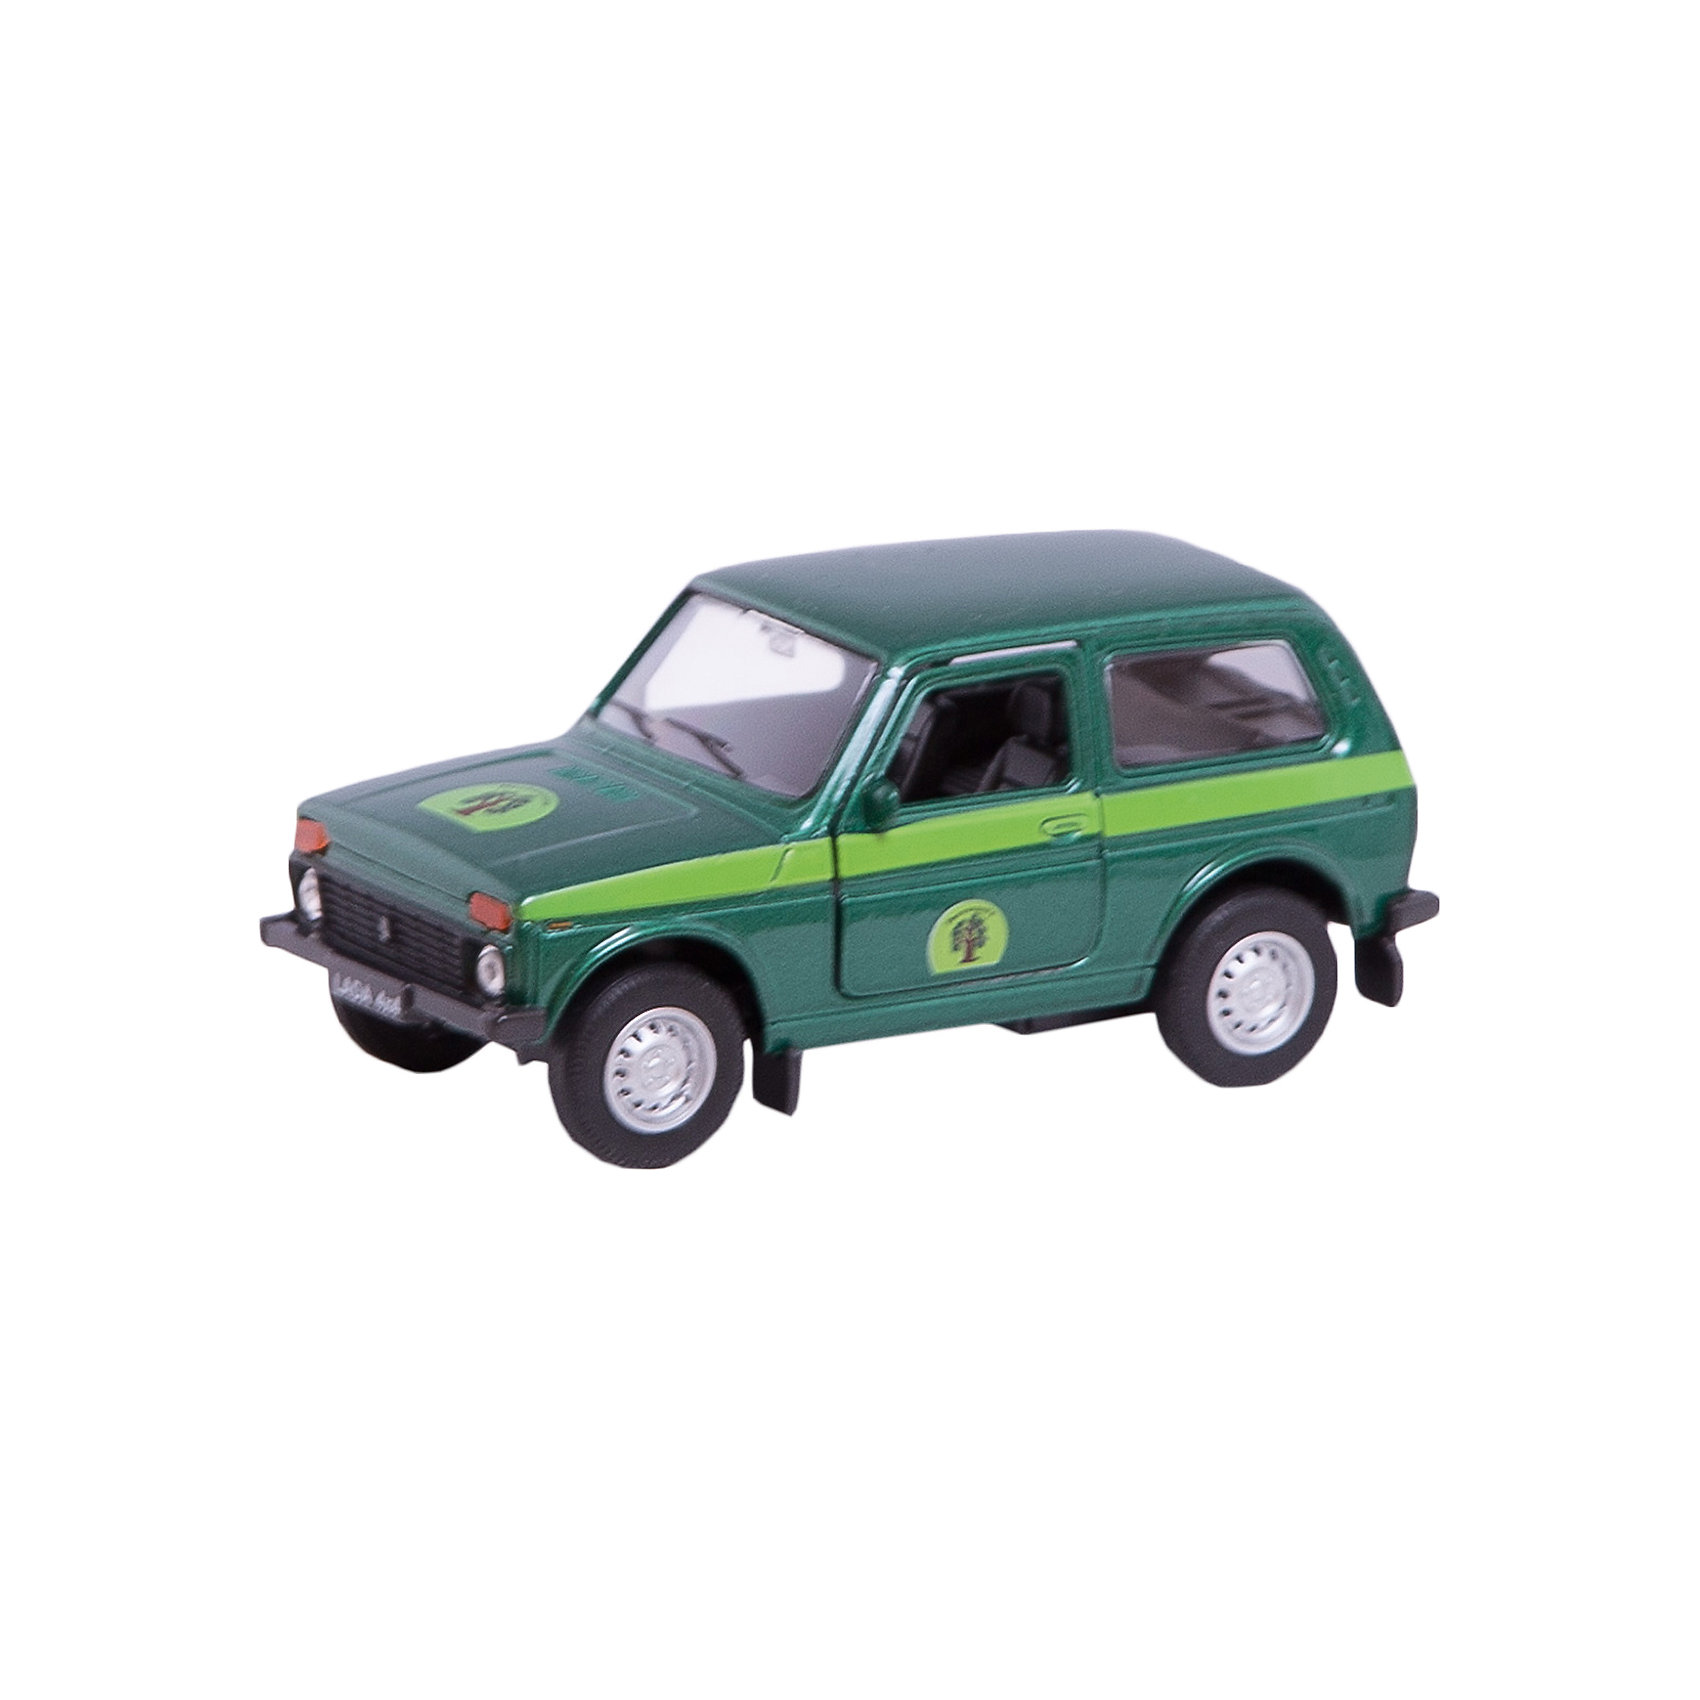 Welly ������ ������ 1:34-39 LADA 4x4 ����������